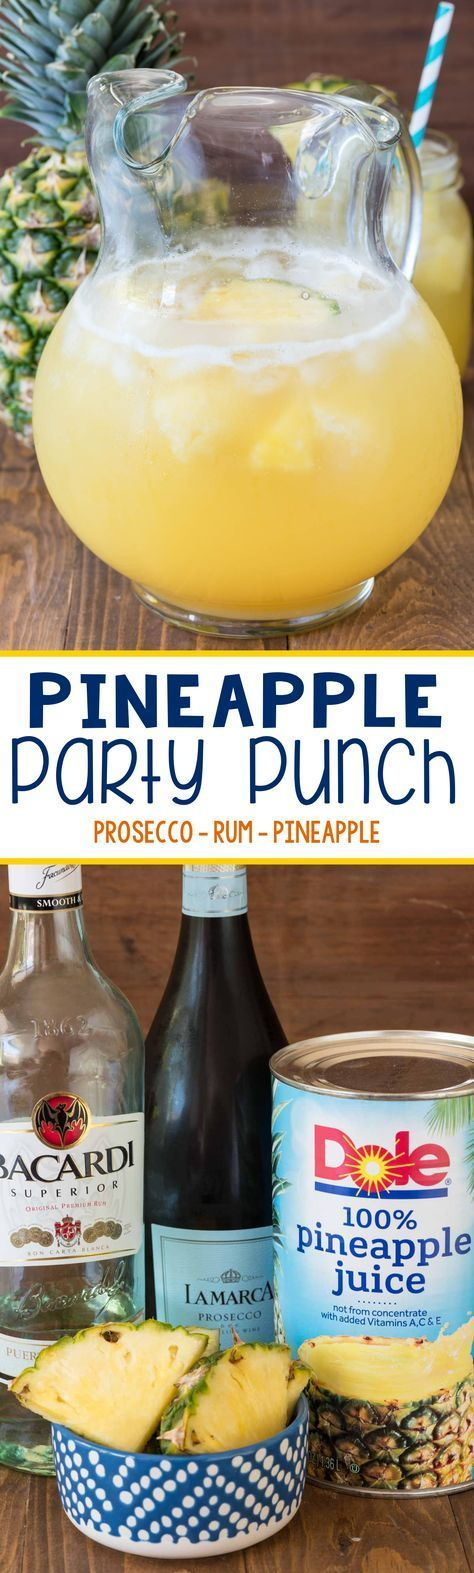 Easy Pineapple Party Punch recipe - Just 3 ingredients makes the most refreshing cocktail! Plus, a non-alcoholic version too! (Pour Drink Punch Recipes)